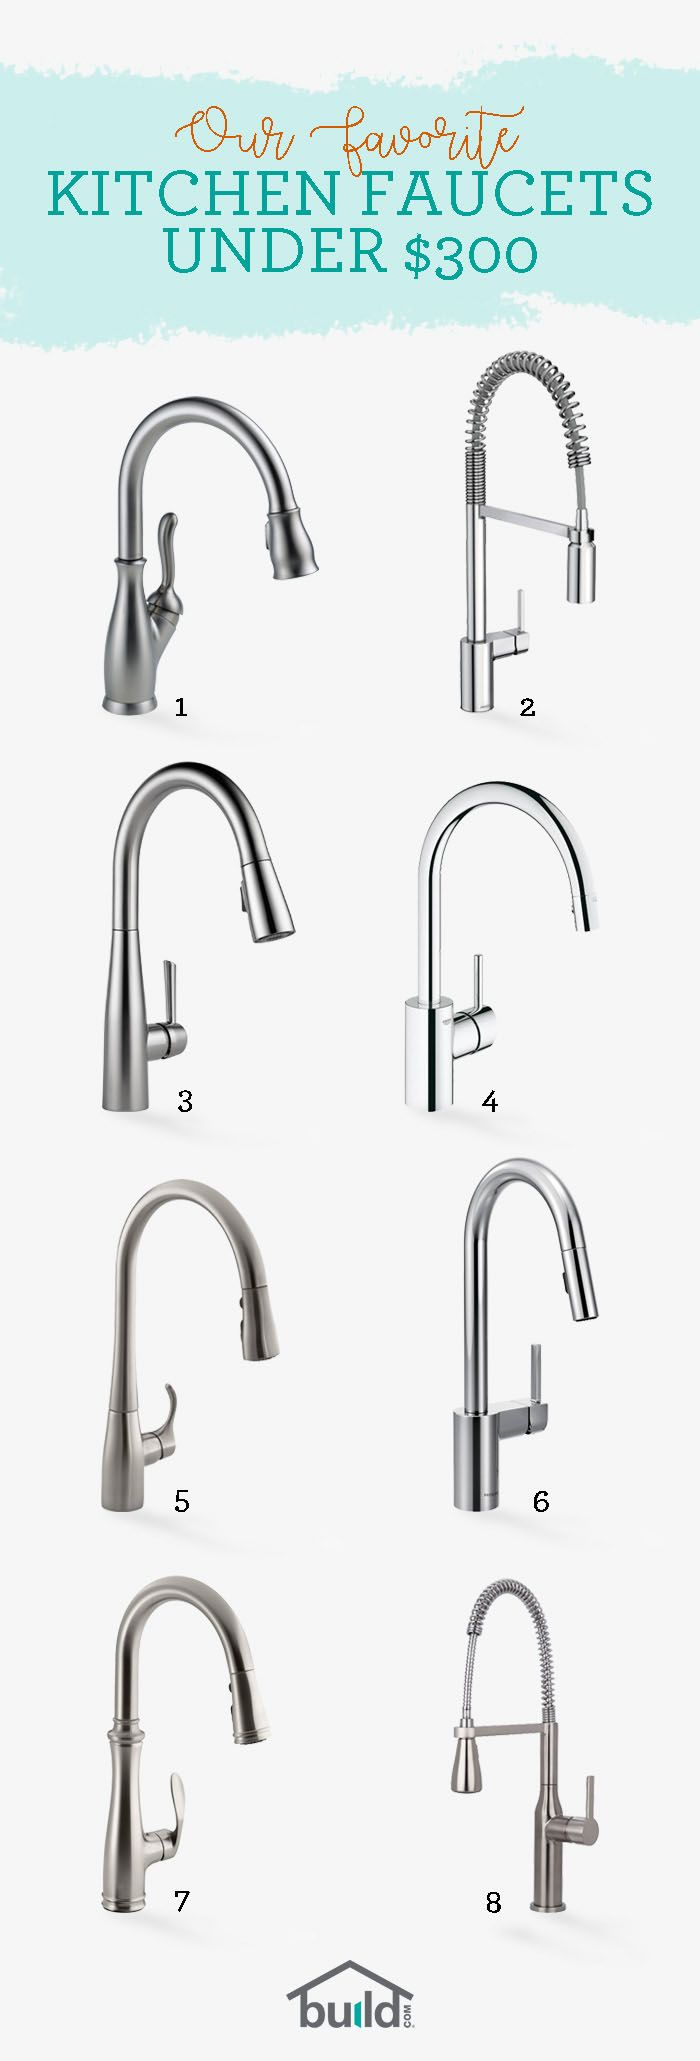 1. Delta 9178-AR-DST | 2. Moen 5923 | 3. Delta 9113-AR-DST | 4. Grohe 32665001 | 5. Kohler K-596-VS | 6. Moen 7565 | 7. Kohler K-560-VS | 8. Miseno MNO500BSS | Discover our favorite kitchen faucets, all priced under $300 to fit your budget.